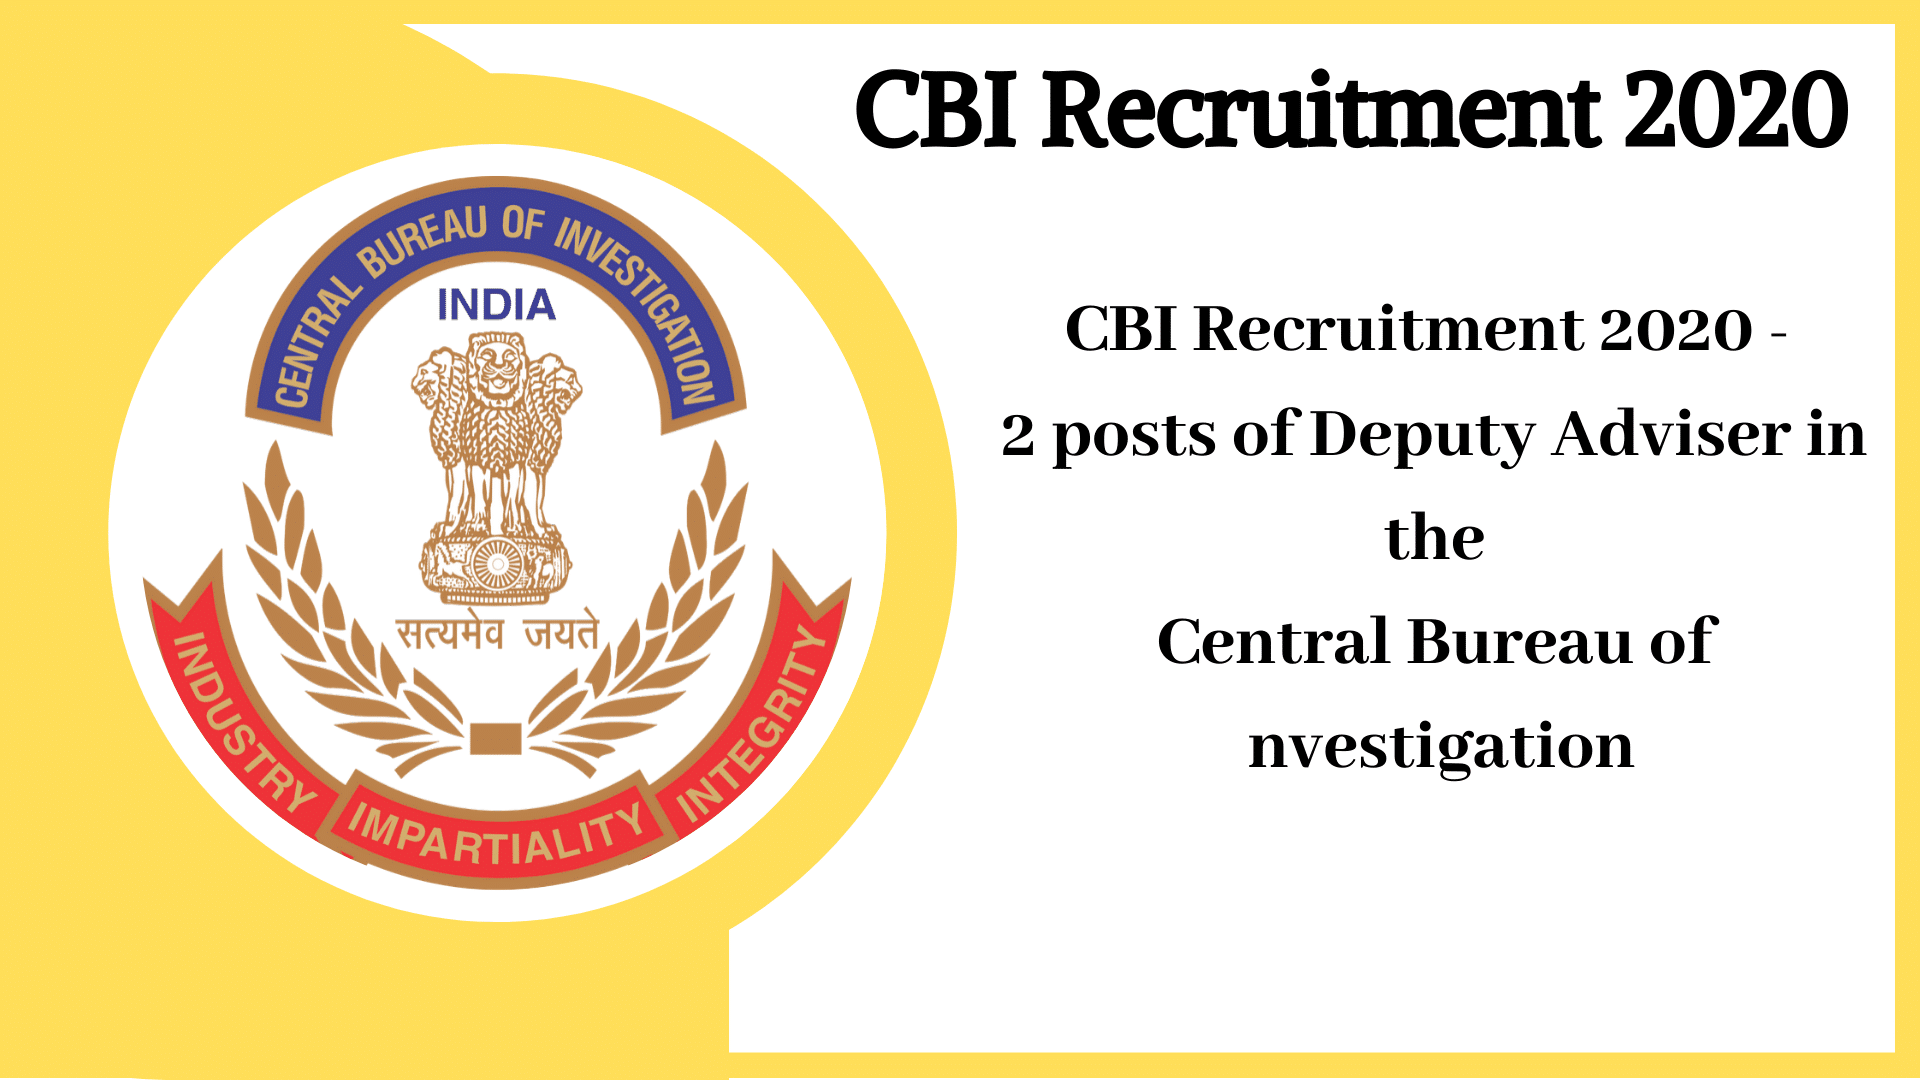 CBI Recruitment 2020 – 2 posts of Deputy Adviser in the Central Bureau of Investigation